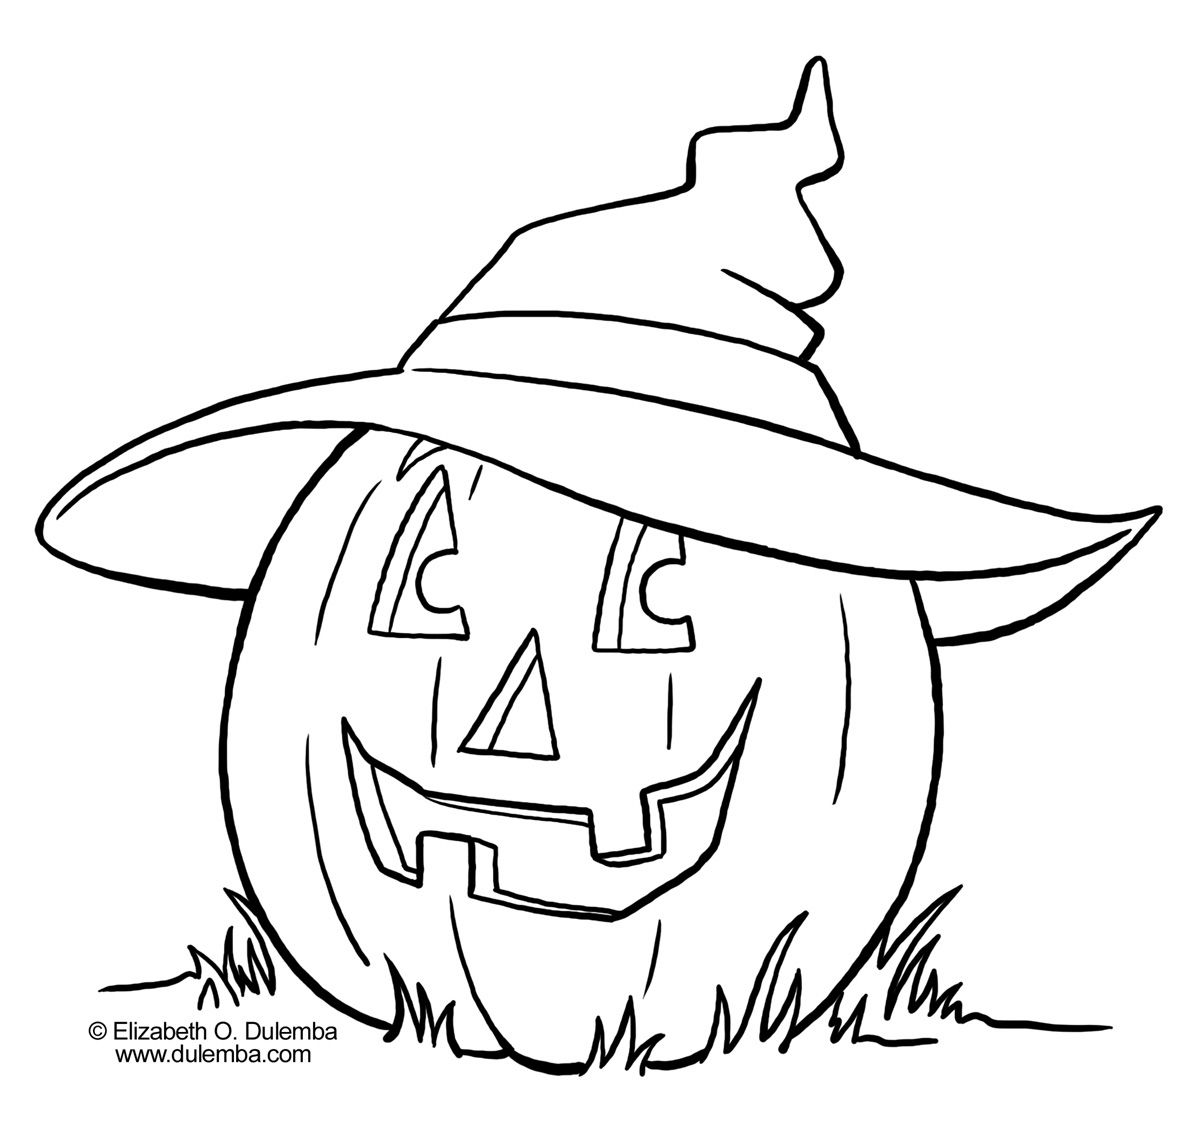 Applique Pumpkin Halloween Coloring Pages Printable Halloween Coloring Sheets Pumpkin Coloring Pages